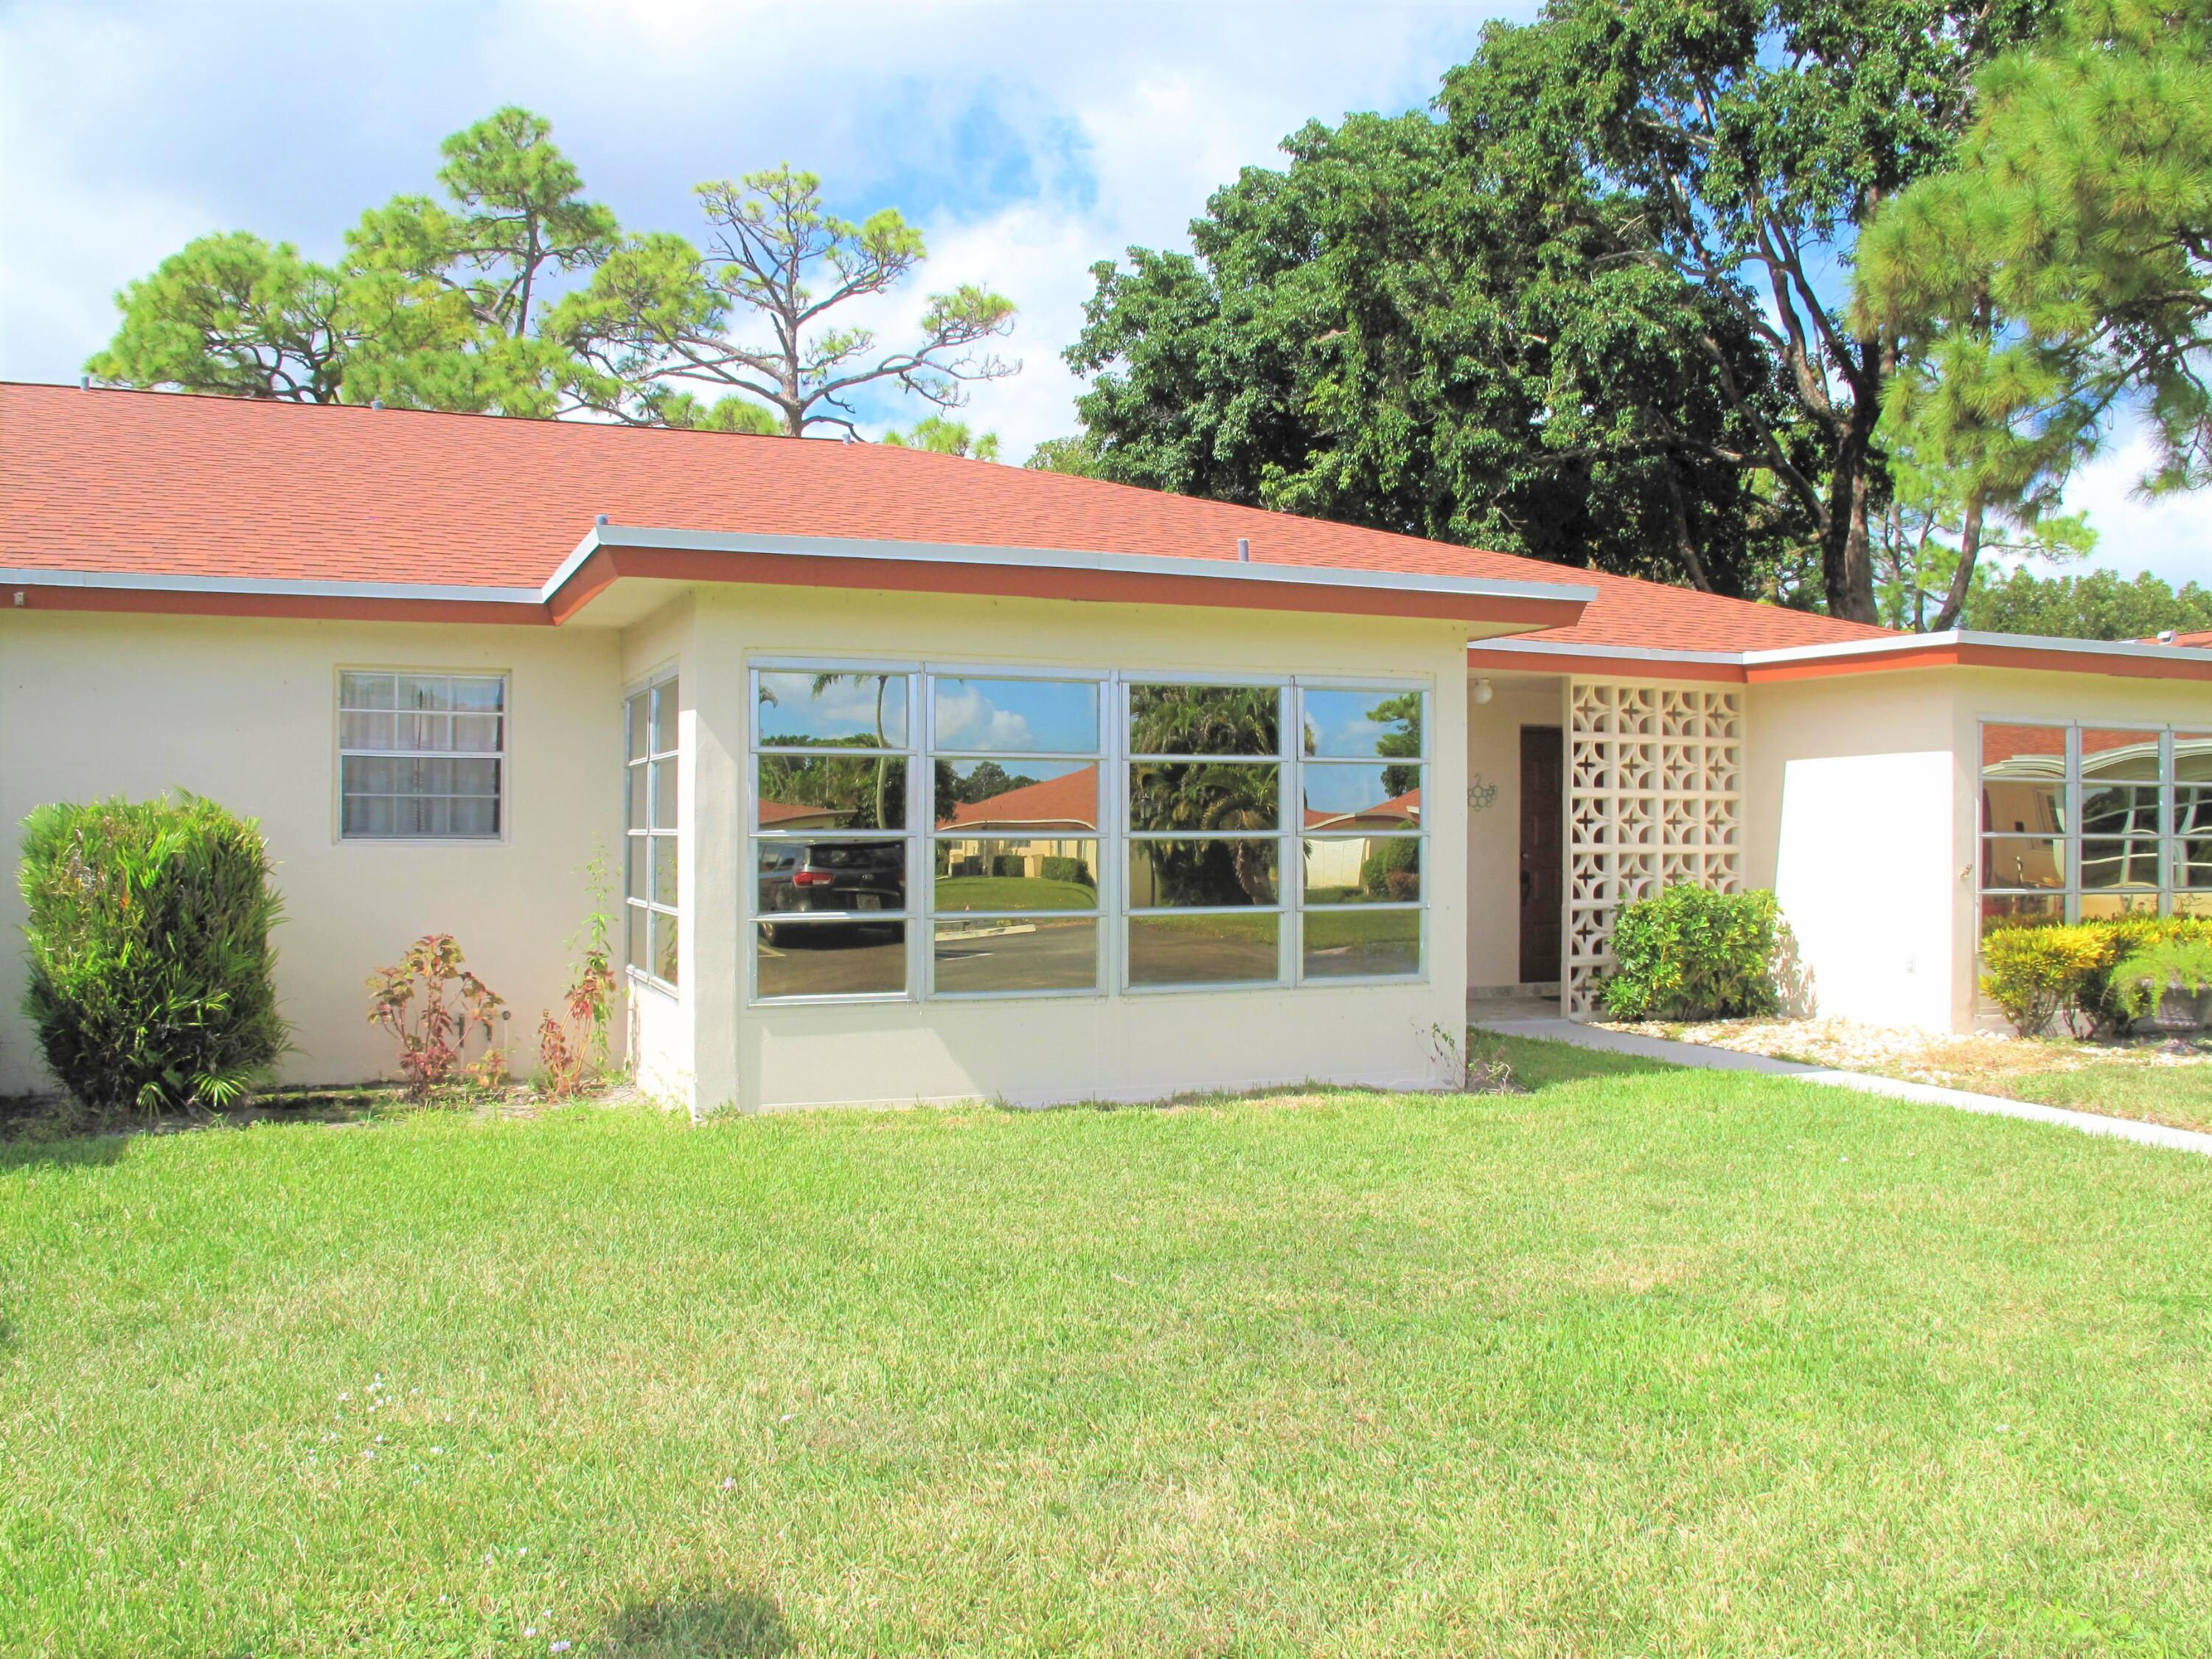 Great location of this 1BR/2BA pristine villa nestled in a 55+ community. This mint villa features: New 2020 electrical Panel,  New AC Jan 2020, Newer roof 2019, Laminate wood flooring throughout, enclosed Florida room under air w/tile flooring, galley kitchen with high hats and new flooring, Guest bathroom has a separate shower. Make this villa your new piece of paradise. Enjoy Florida living at its best in this very active 55+ community where you'll enjoy many planned social activities, game night, traveling, large heated resort style pool and clubhouse and so much more. Located closed to all amenities, just minutes to the beach and downtown Delray where you'll discover quaint shops, open air cafes, fine restaurants, shopping malls, theater, close to I95/Turnpike and  Places of worship.